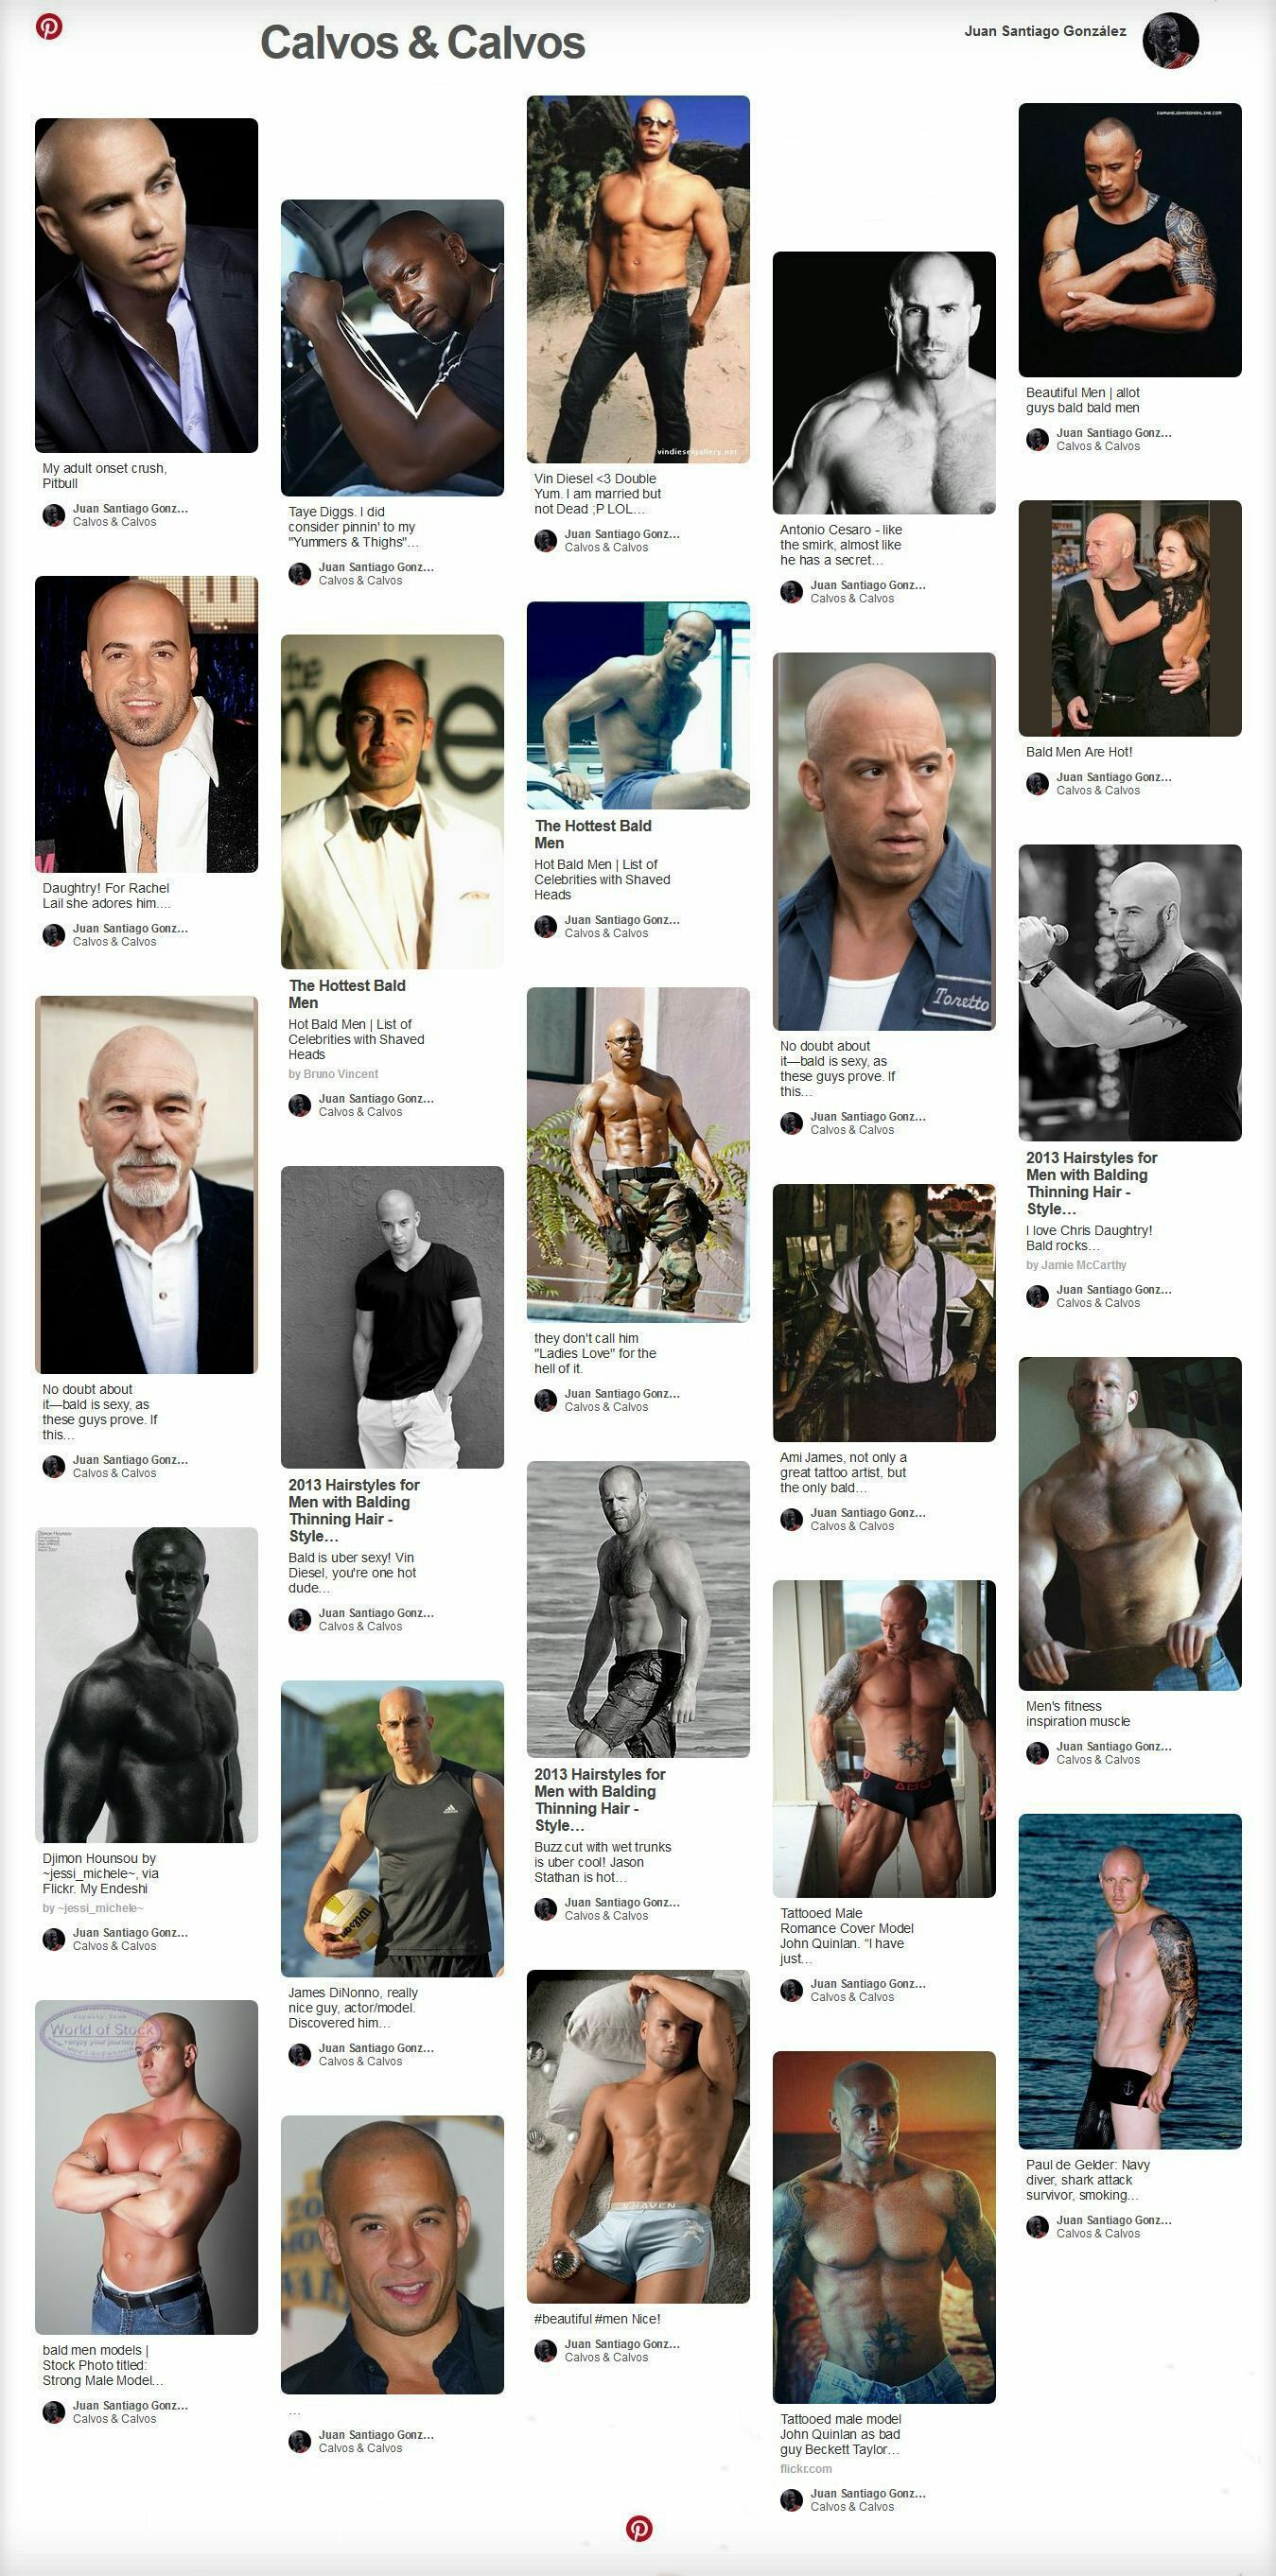 Pinterest Sexy Celebrity Bald Men Dwayne Johnson Ami James John Quinlan Taye Diggs #JohnQuinlan